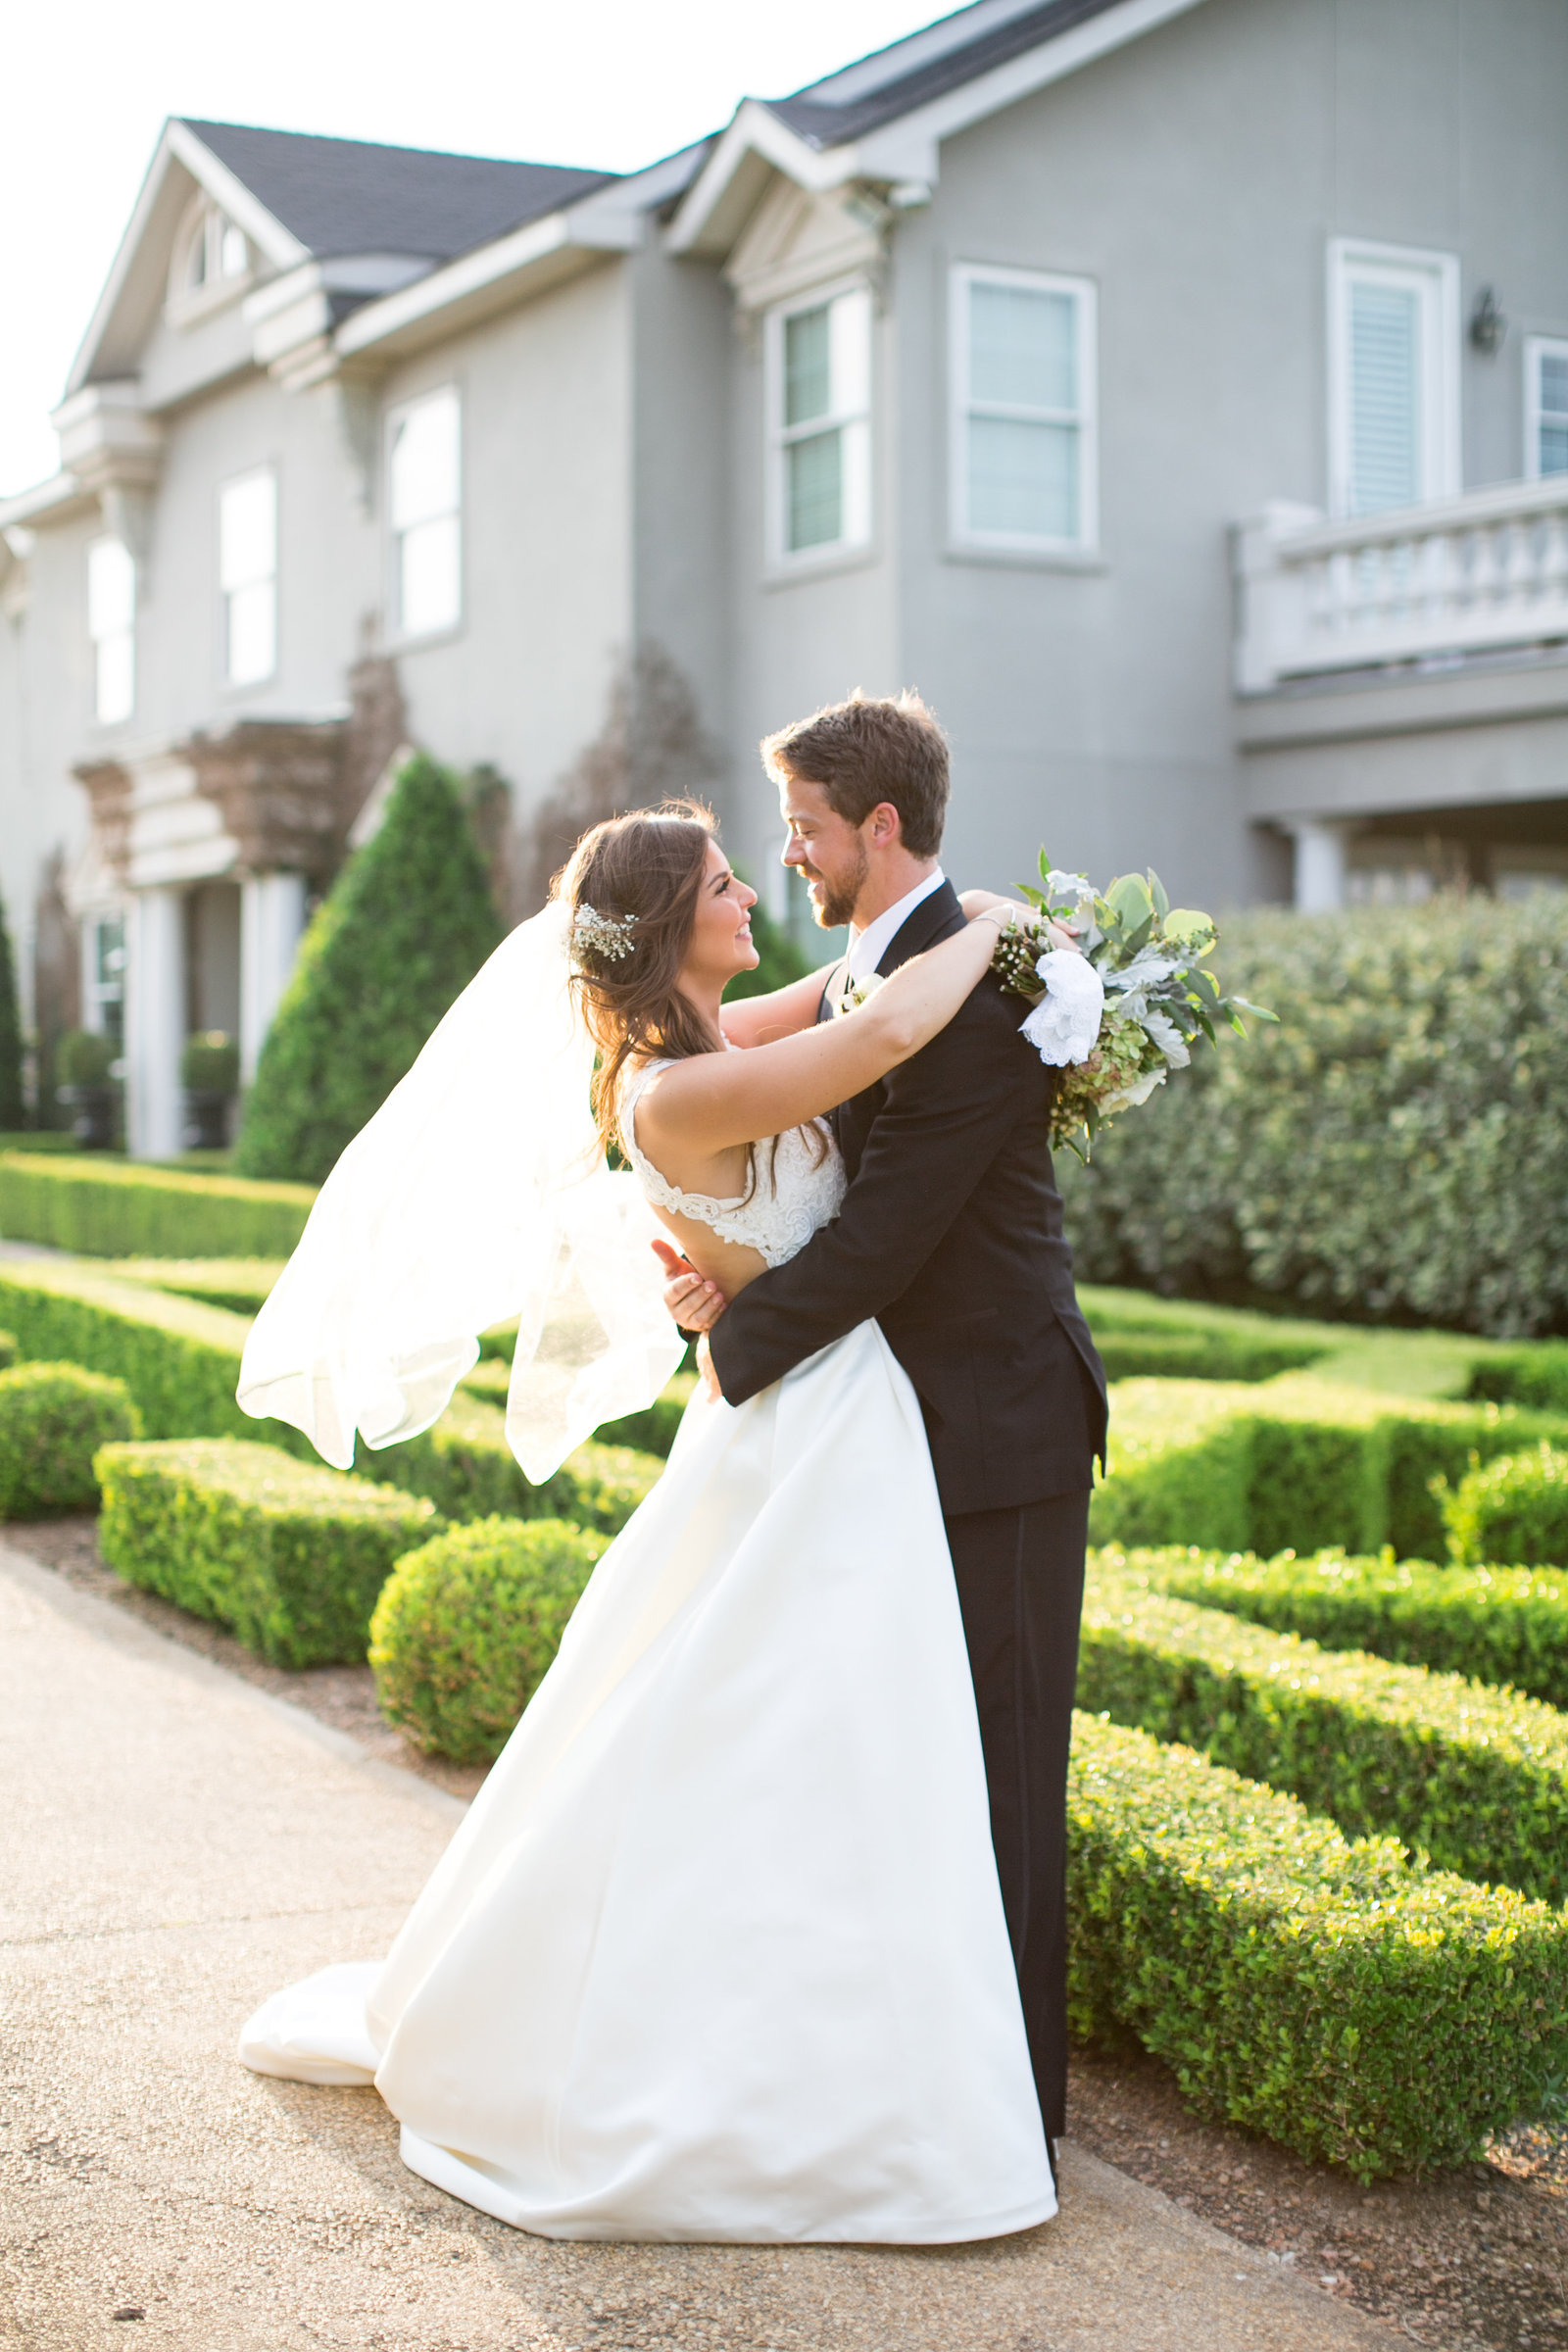 gardens-of-cranesbury-view-canyon-lake-texas-wedding-bride-and-groom-photo-17